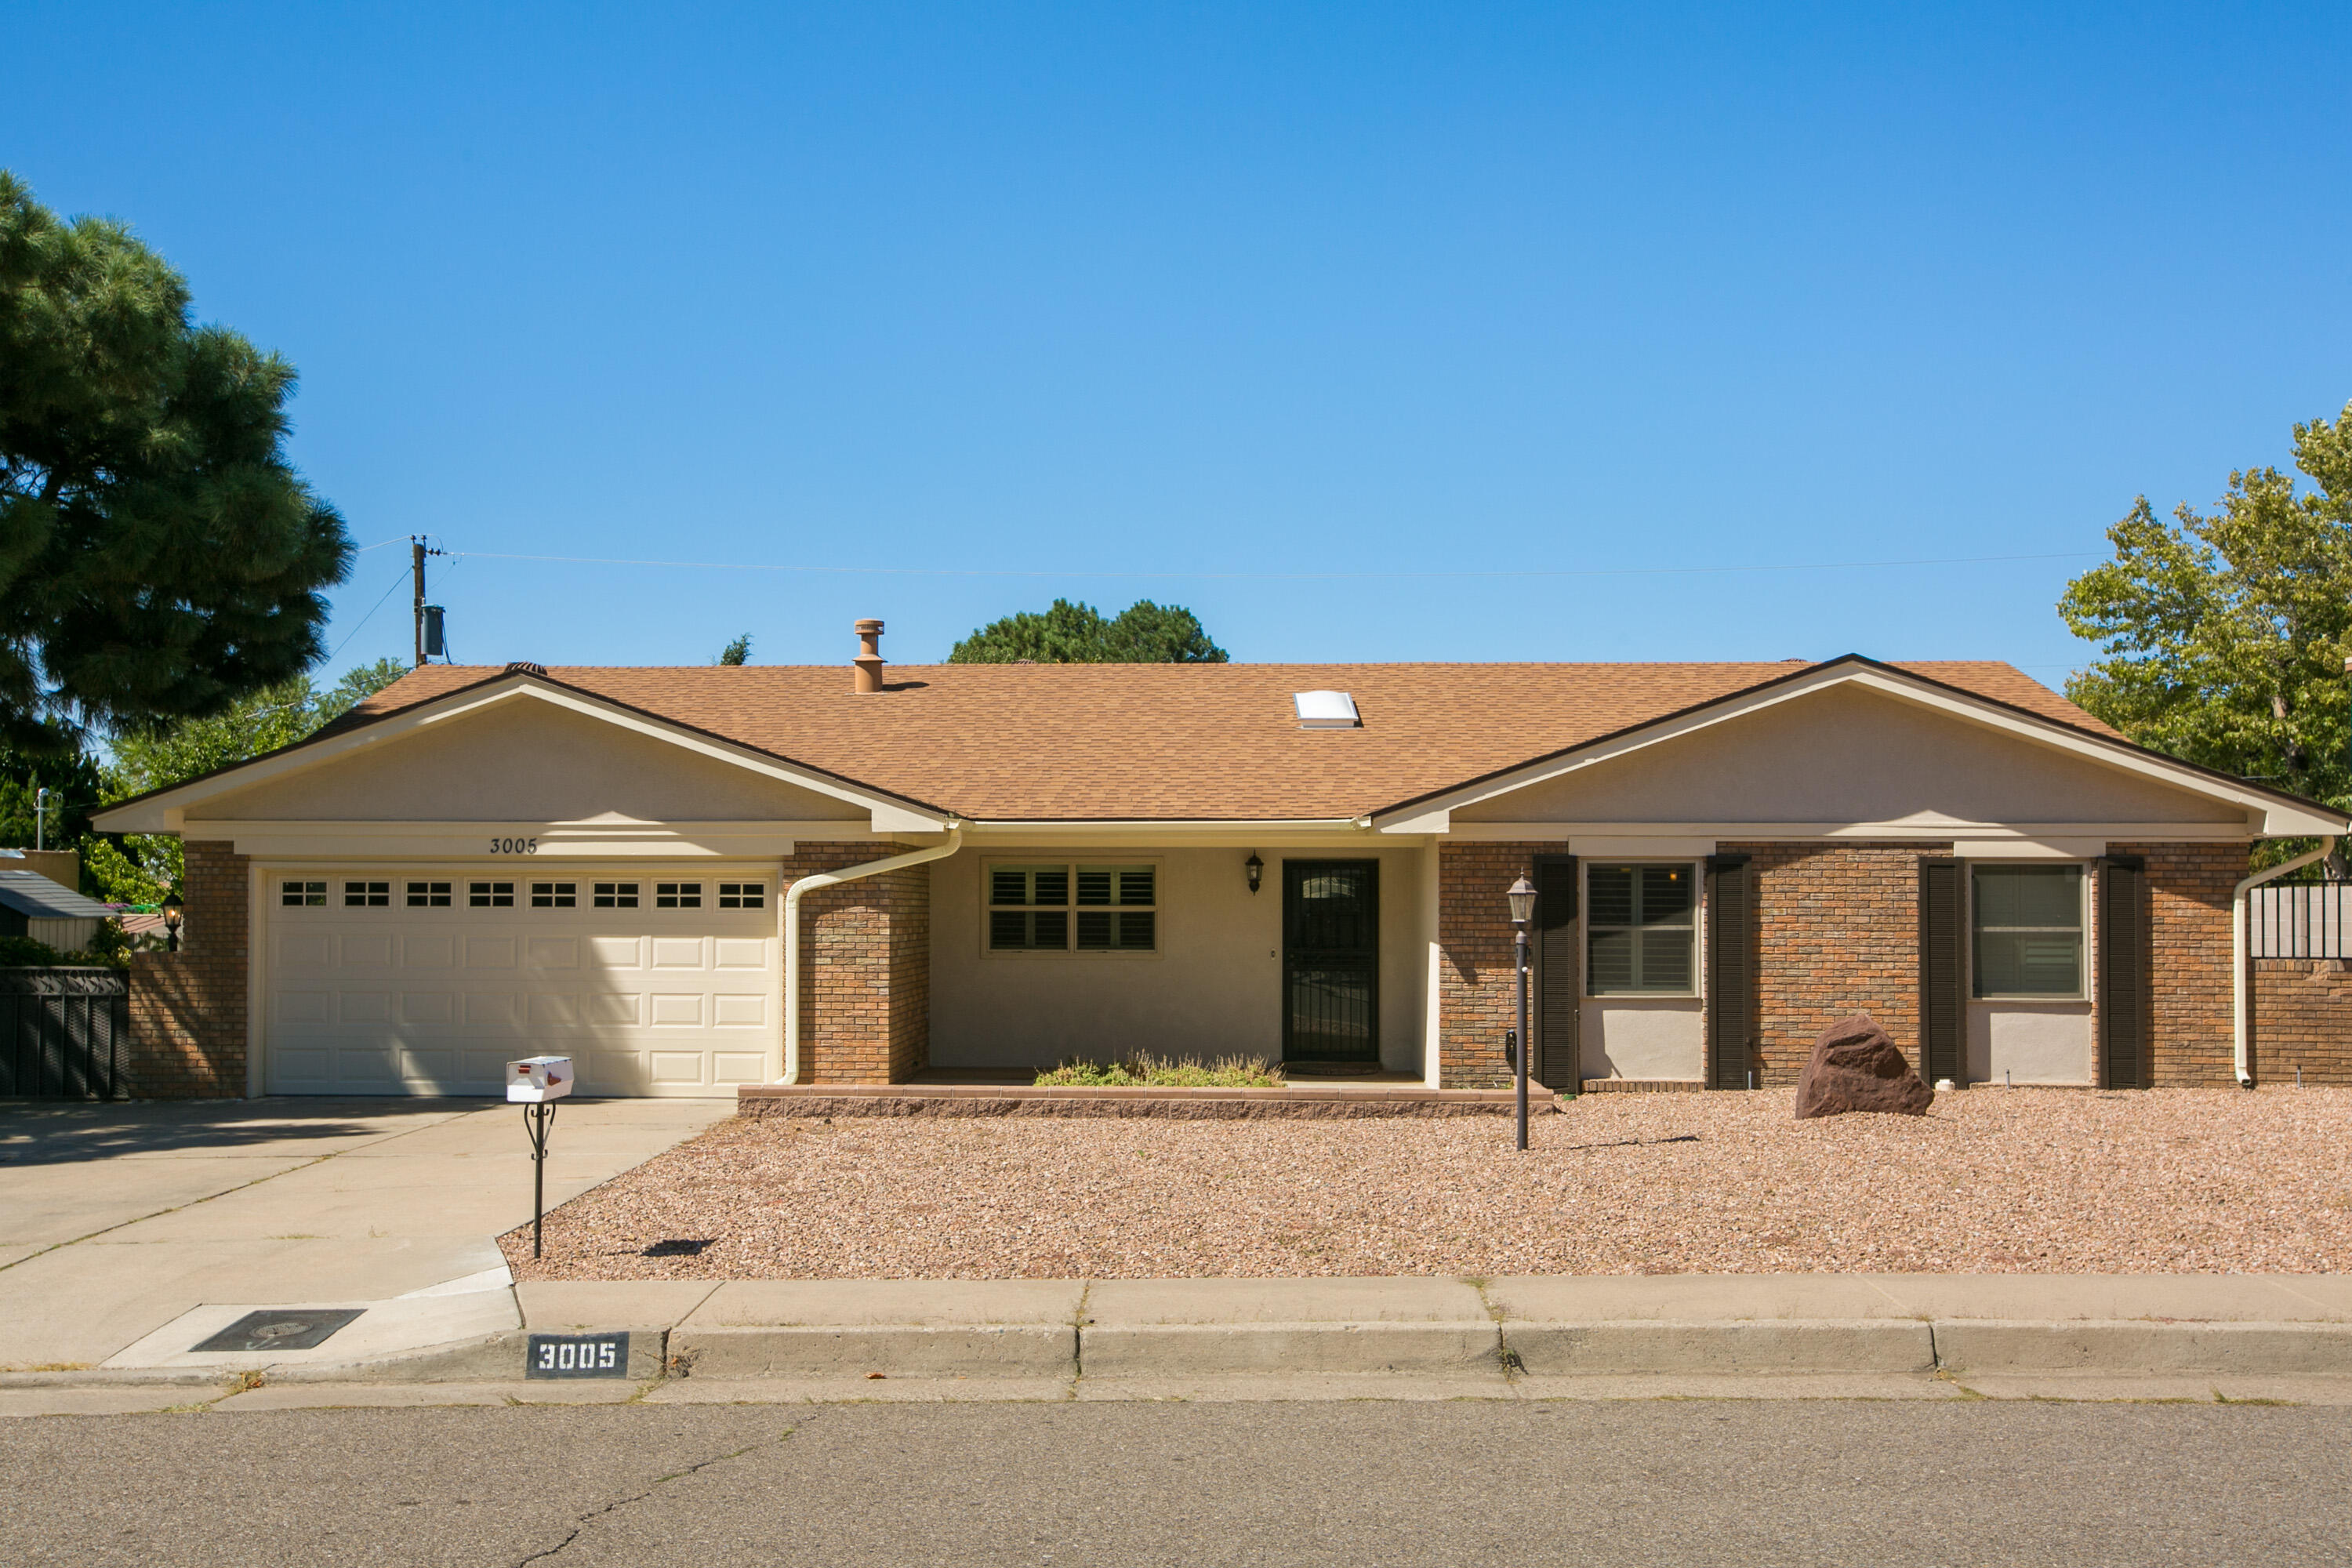 What a find!  Single level Mossman walking distance to Sandia High School with recent Furnace, REFRIGERATED AIR, and water heater.  Generous .24 acre lot with Side yard parking (RV)  and backyard access.    Beautiful engineered wood floors.   Nice floor plan with formal living and dining rooms plus den with gas log fireplace and built-in bookcases.   3 bedrooms and  some updates in bathrooms.  Plantation shutters.  Covered rear patio.   Detached Shed/workshop may have 220.  2 car attached garage with insulated door, newer opener, and storage closet.